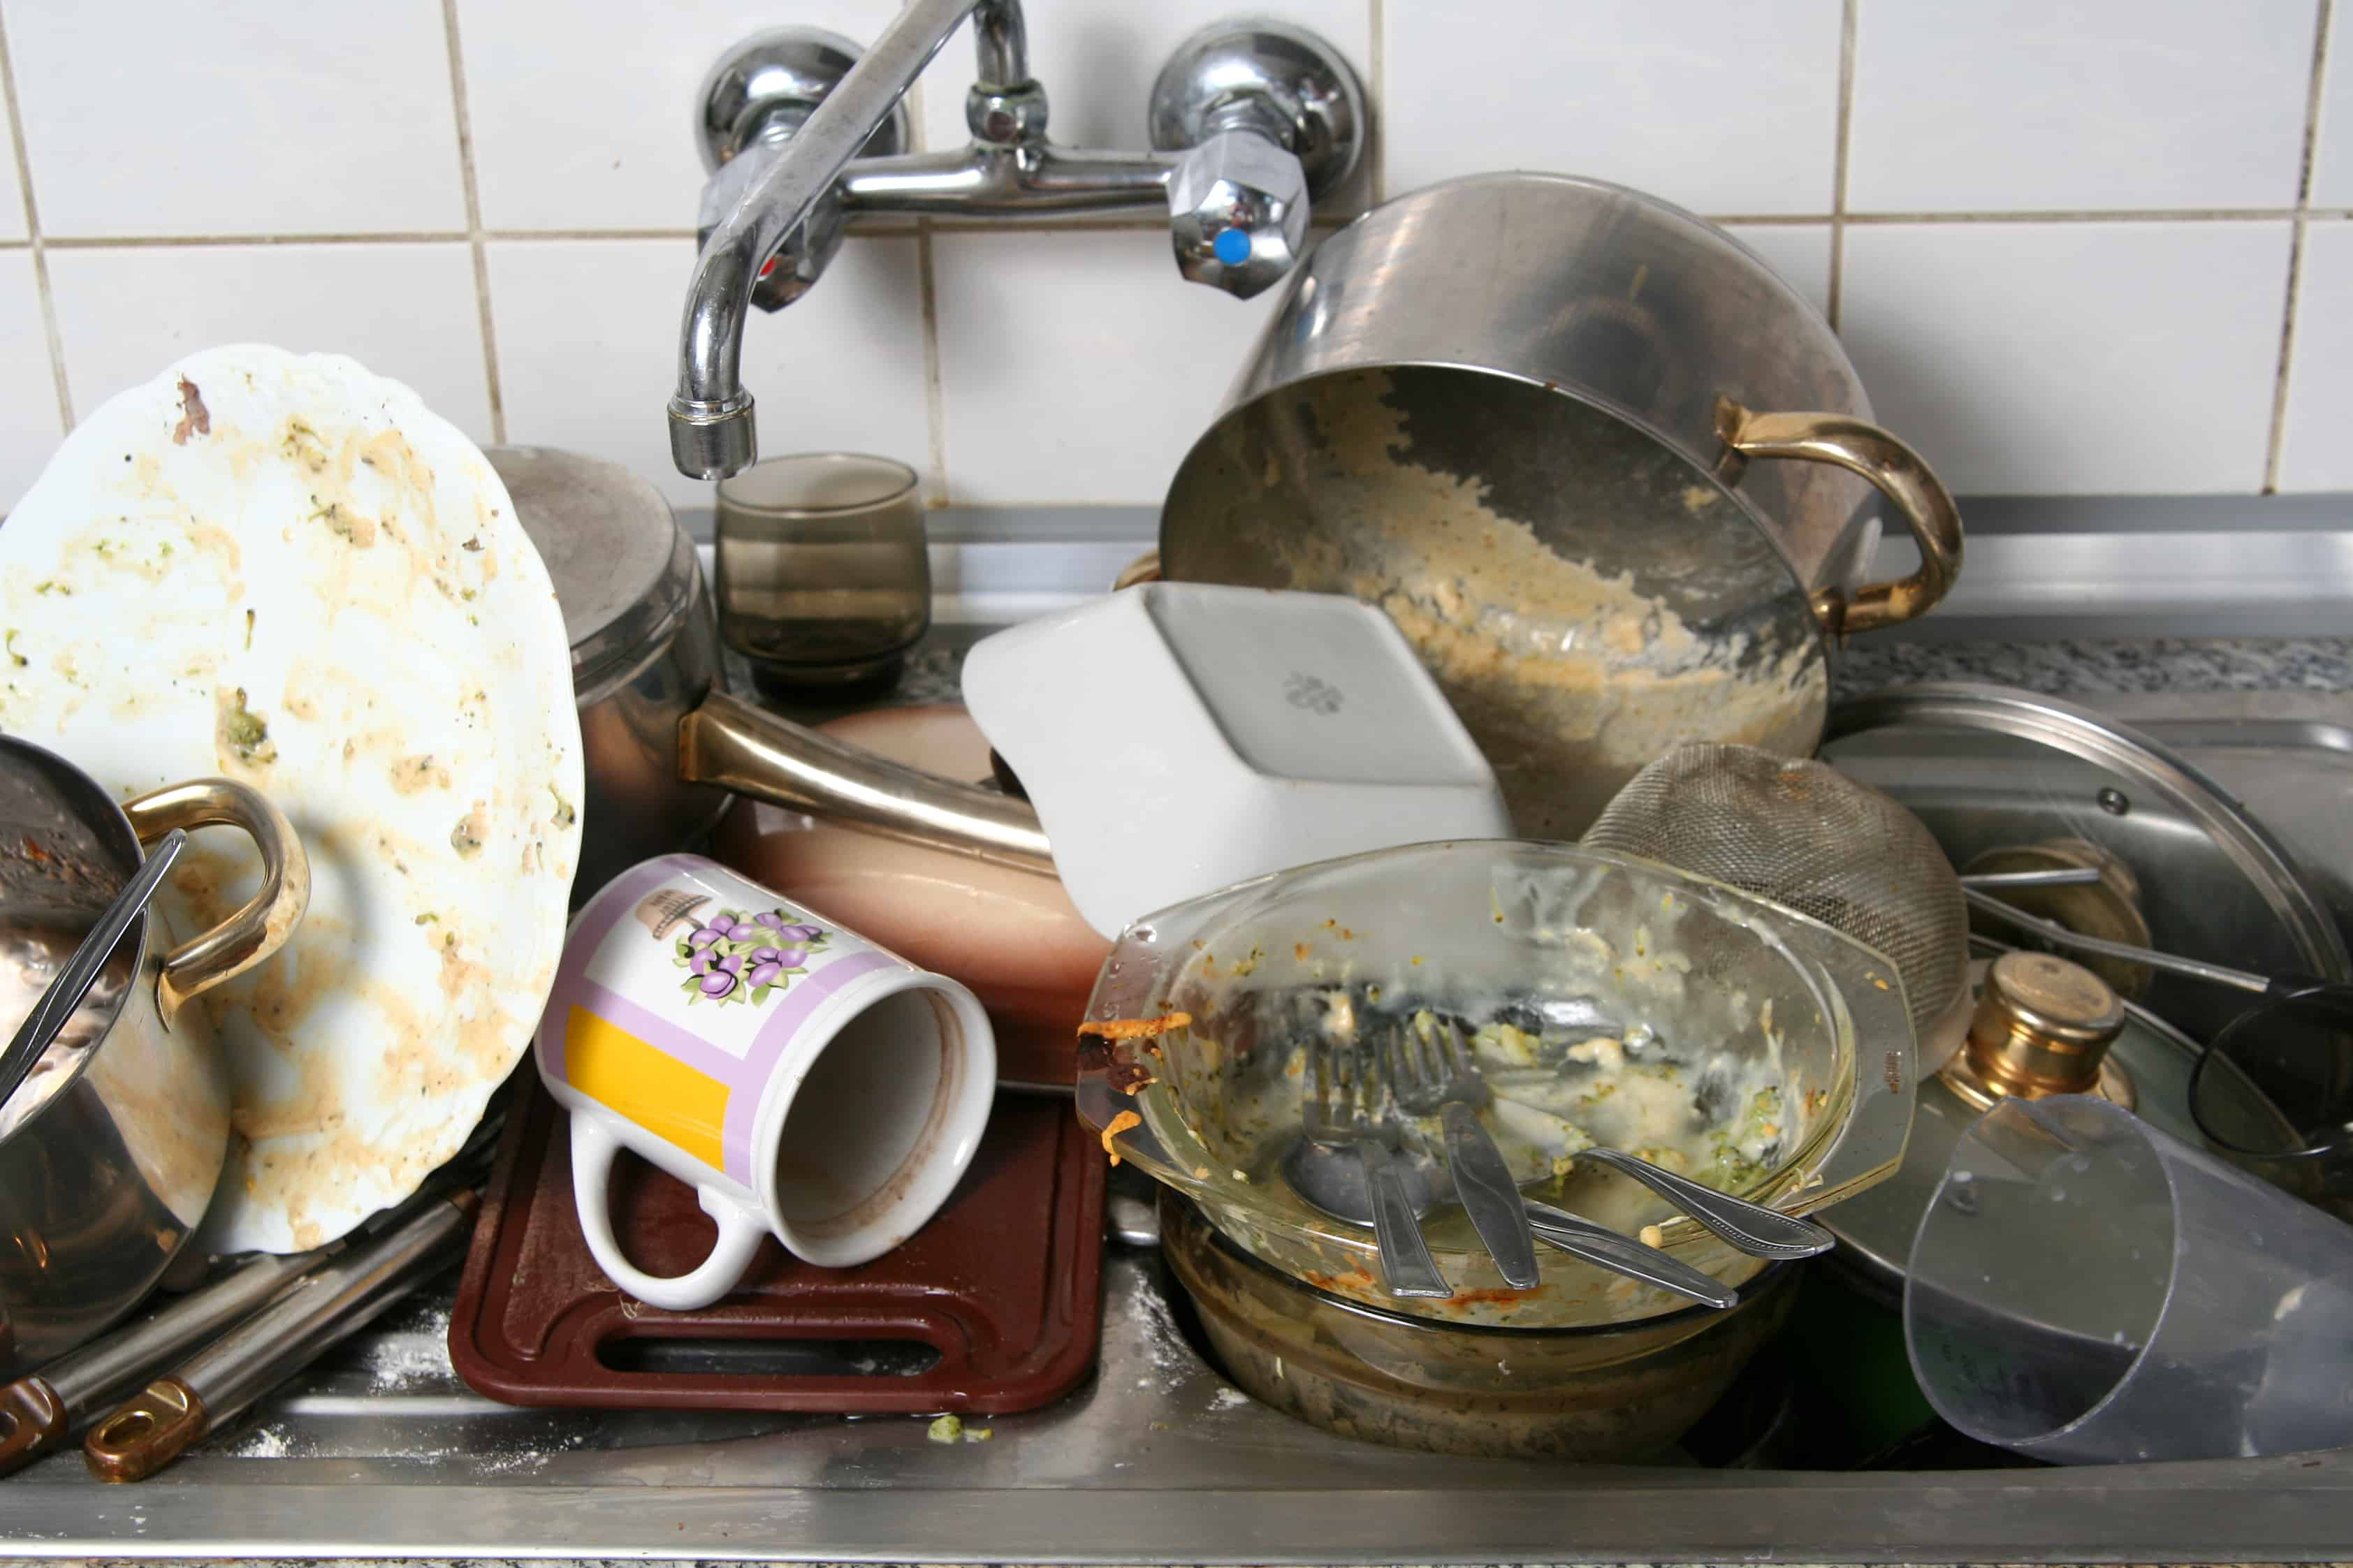 7 Tips for Creating Fewer Dirty Dishes - The Organized Mom